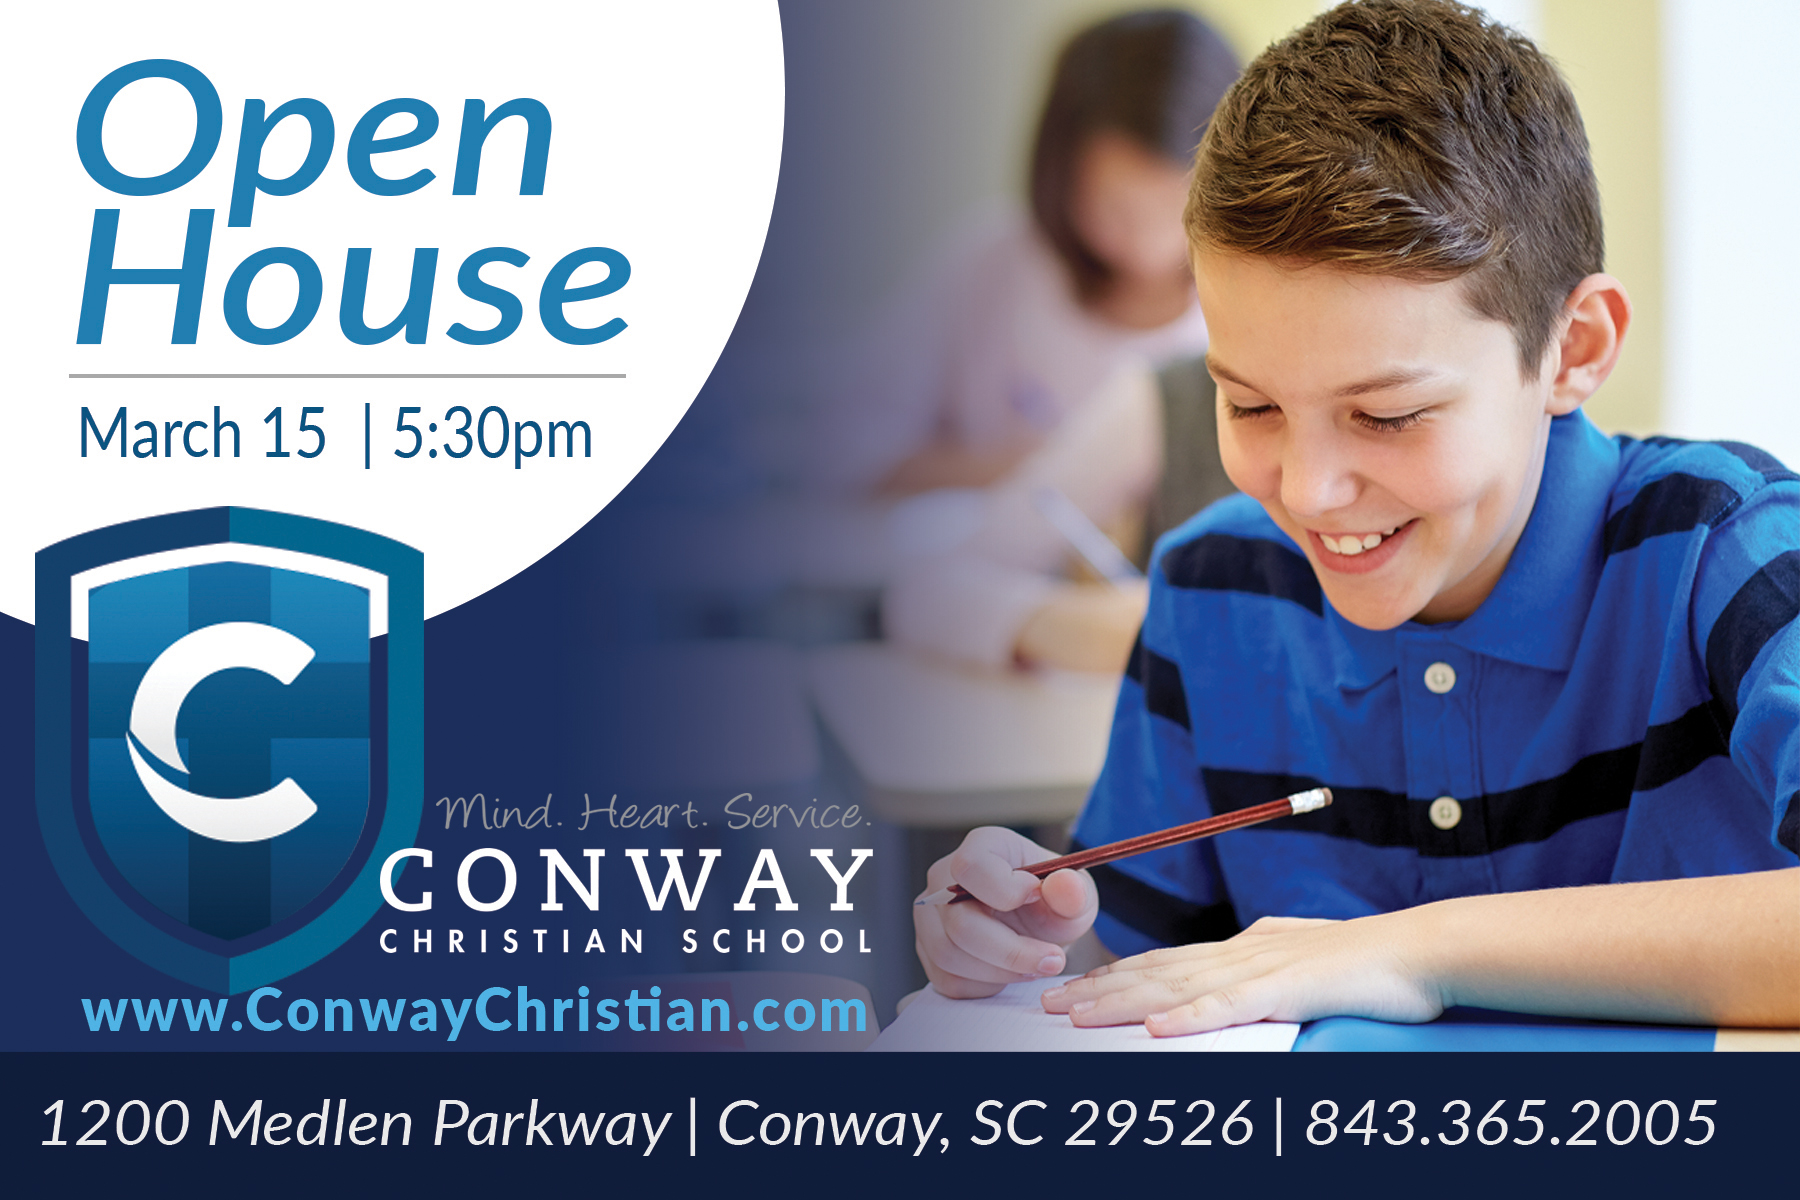 Open House Scheduled for March 15!